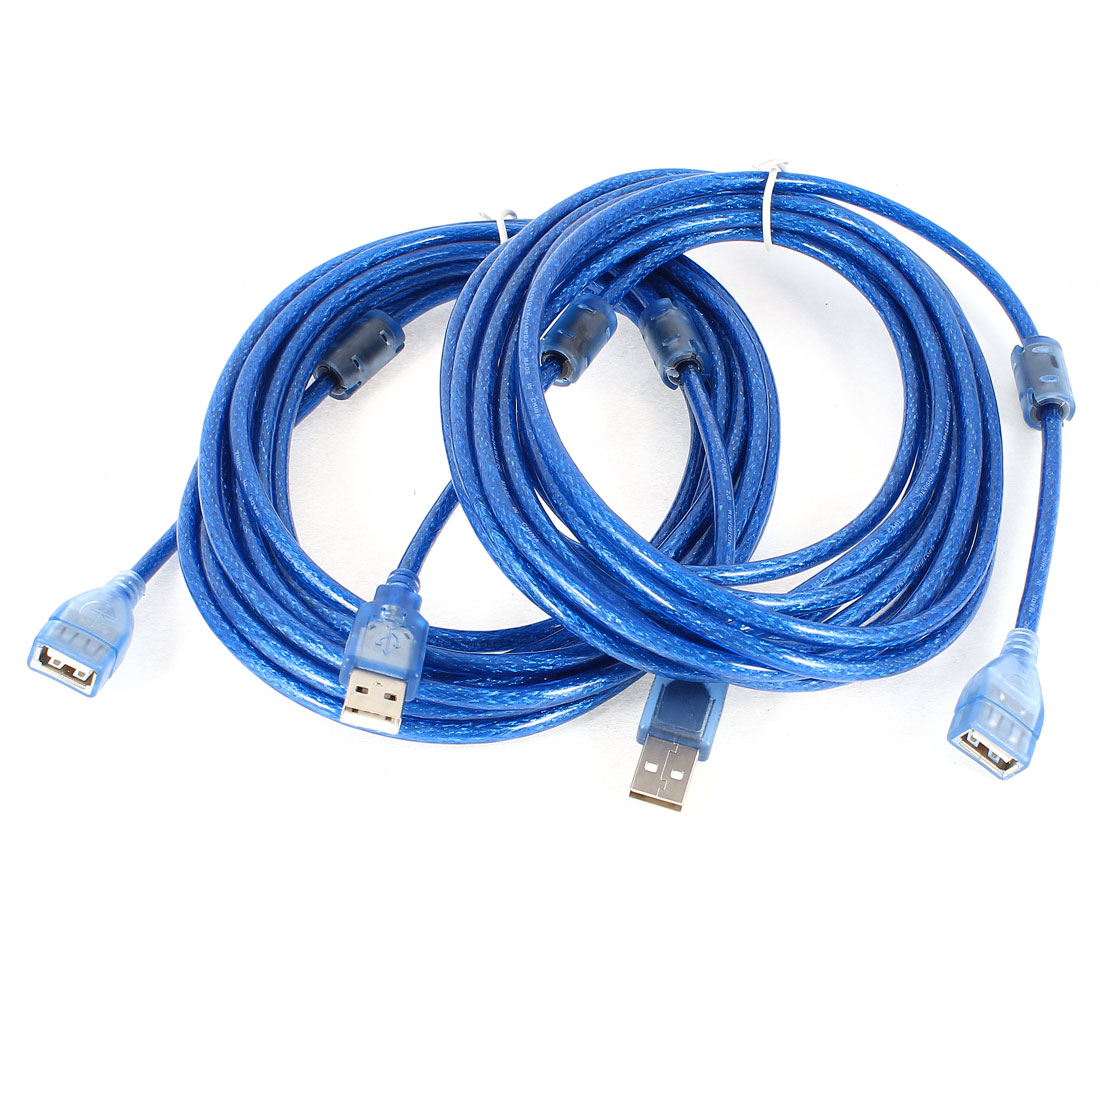 2 Pcs PVC Cover 16ft USB 2.0 A Male to A Female Extension Cable Blue